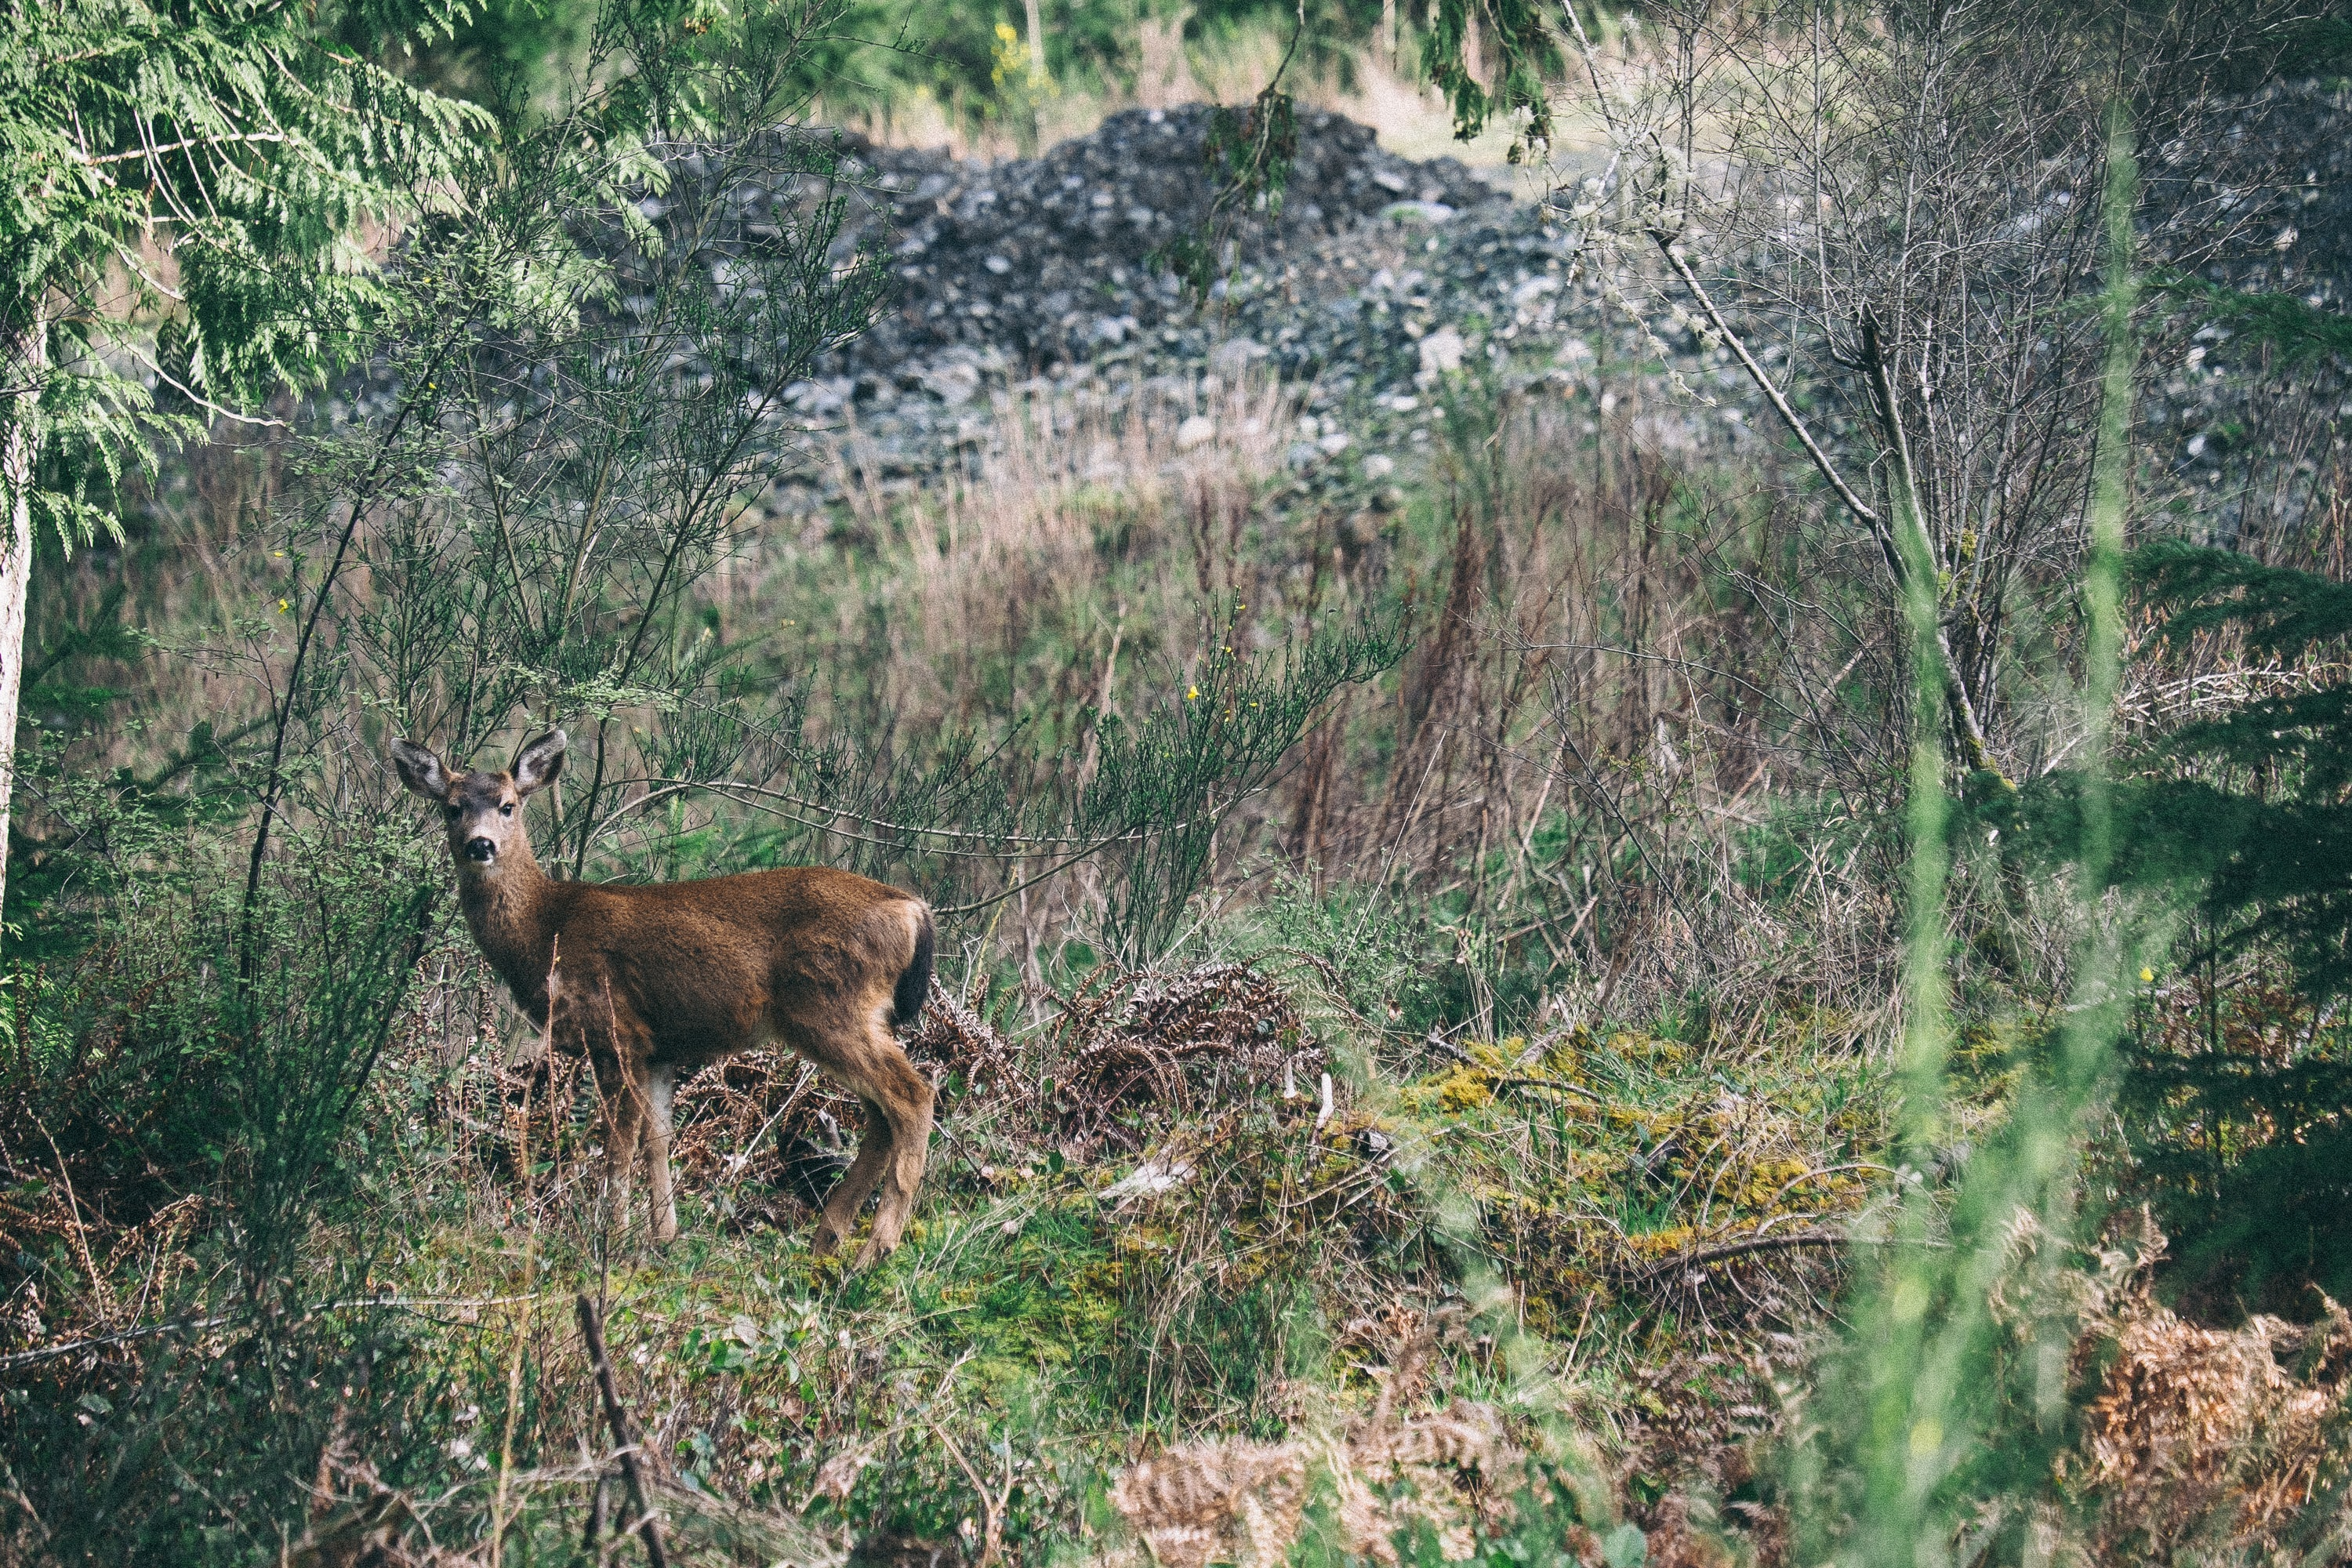 brown standing deer surrounded by green plants and trees